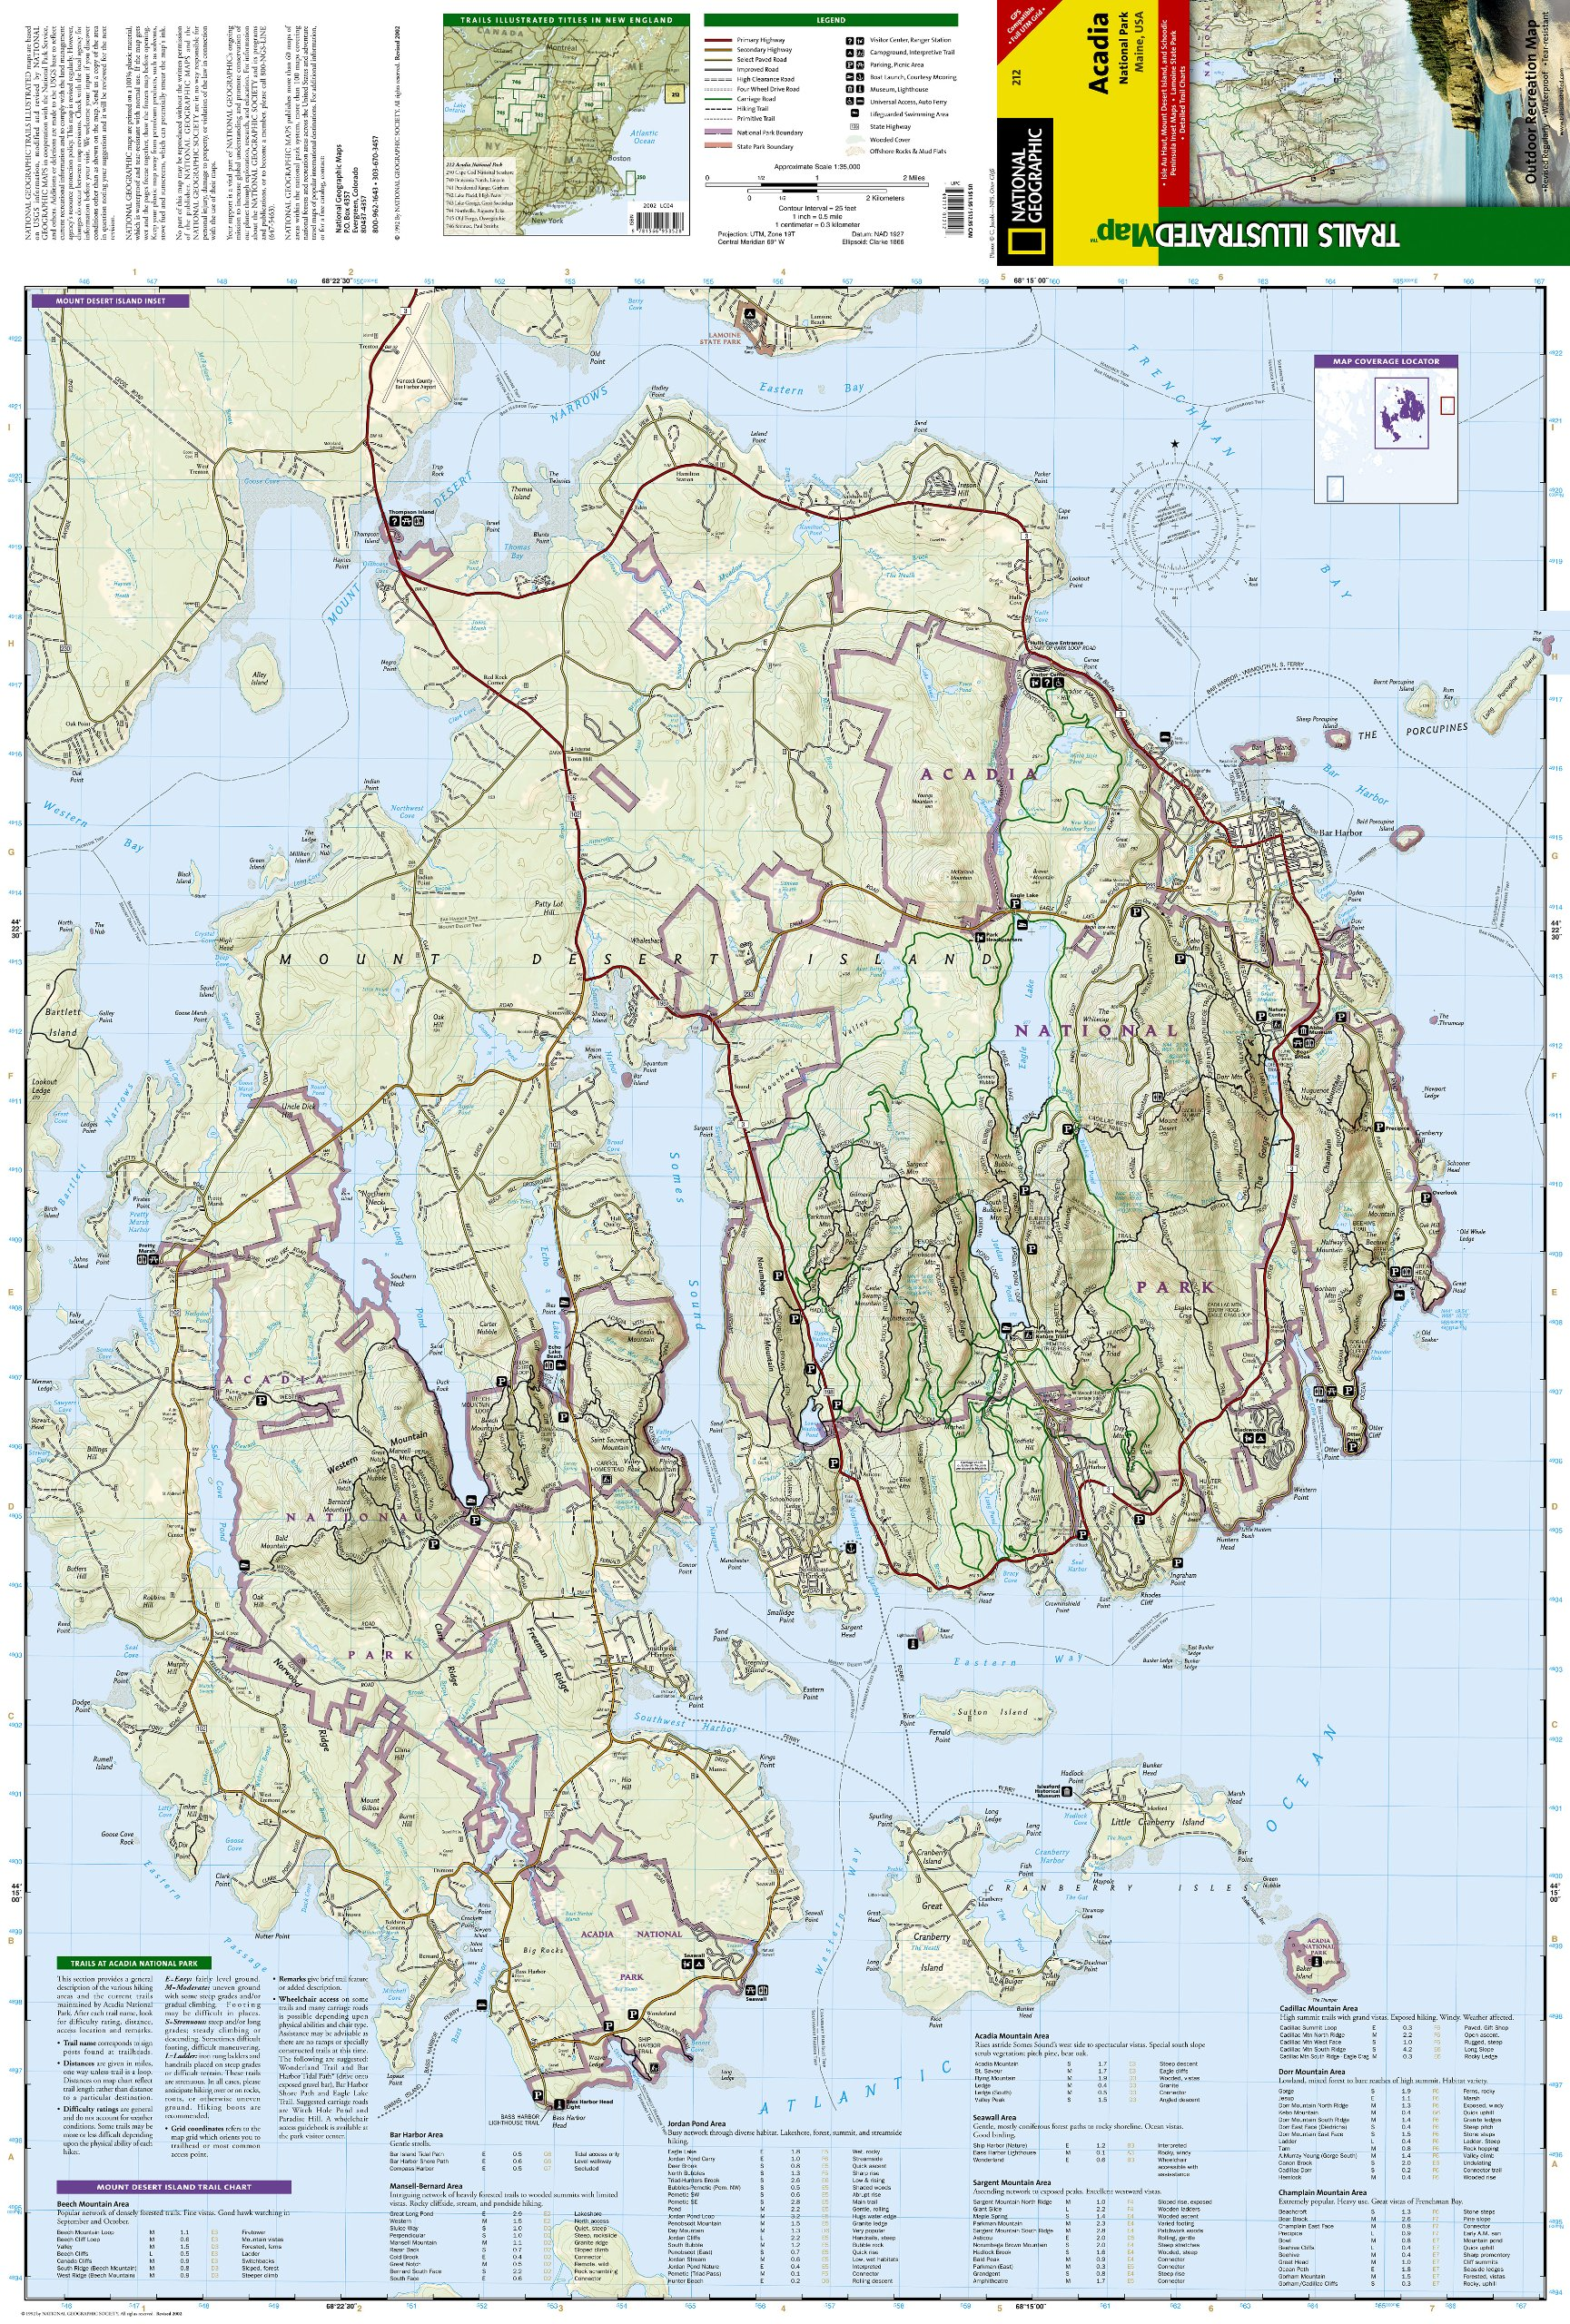 Acadia National Park National Geographic Trails Illustrated Map